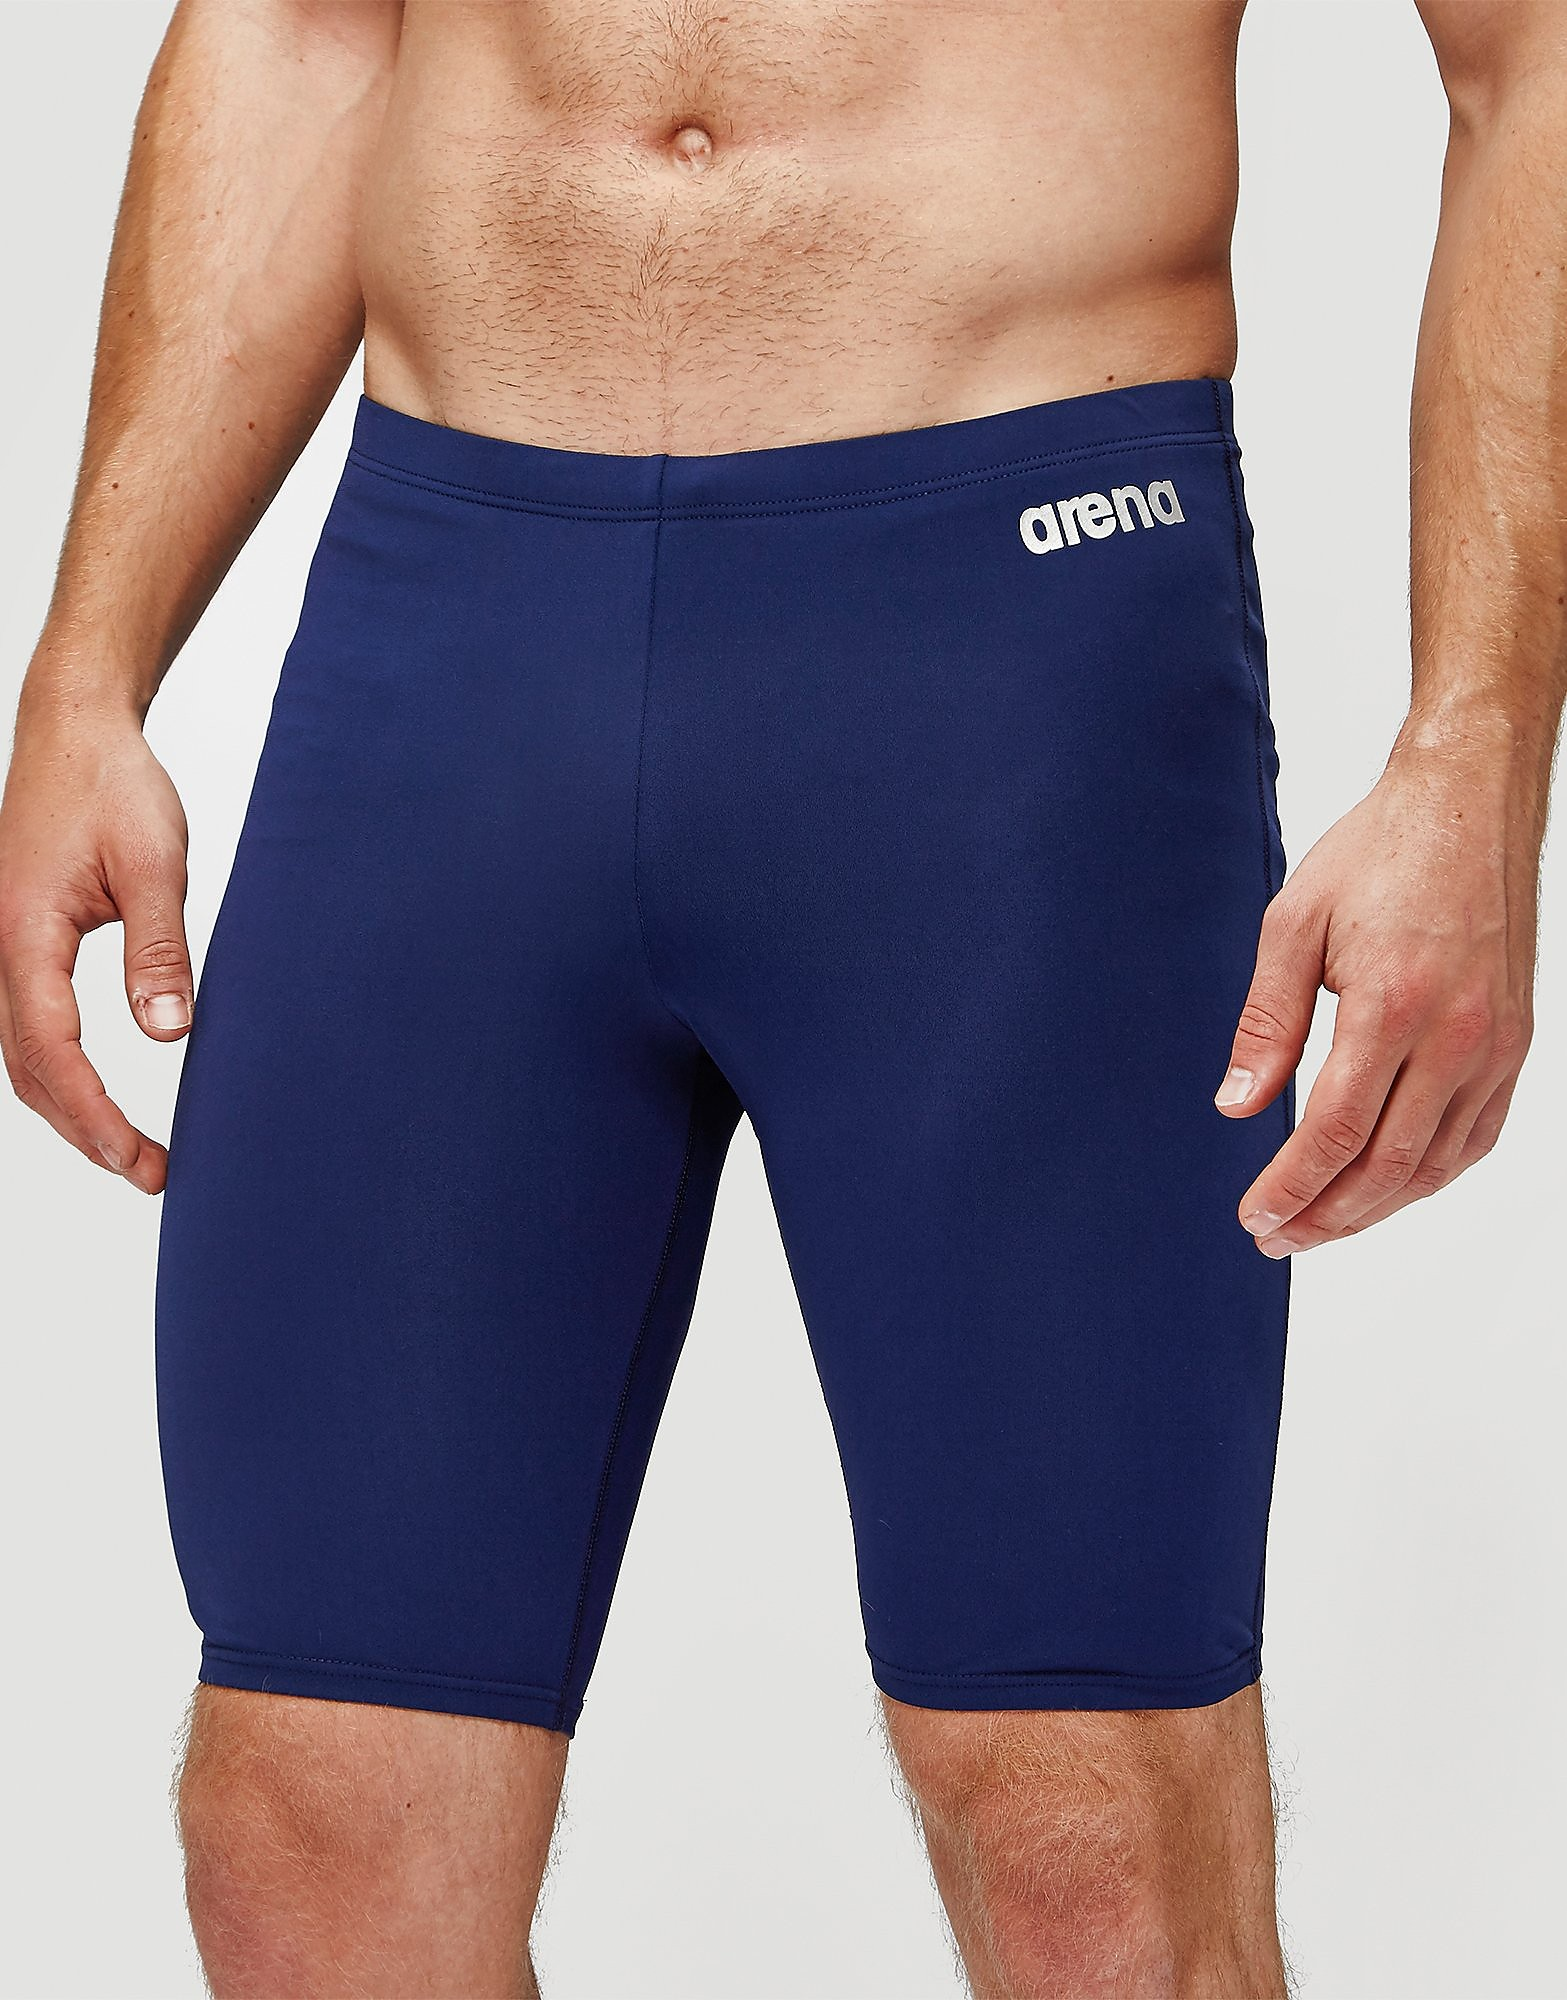 Arena Men's Board Swimshort